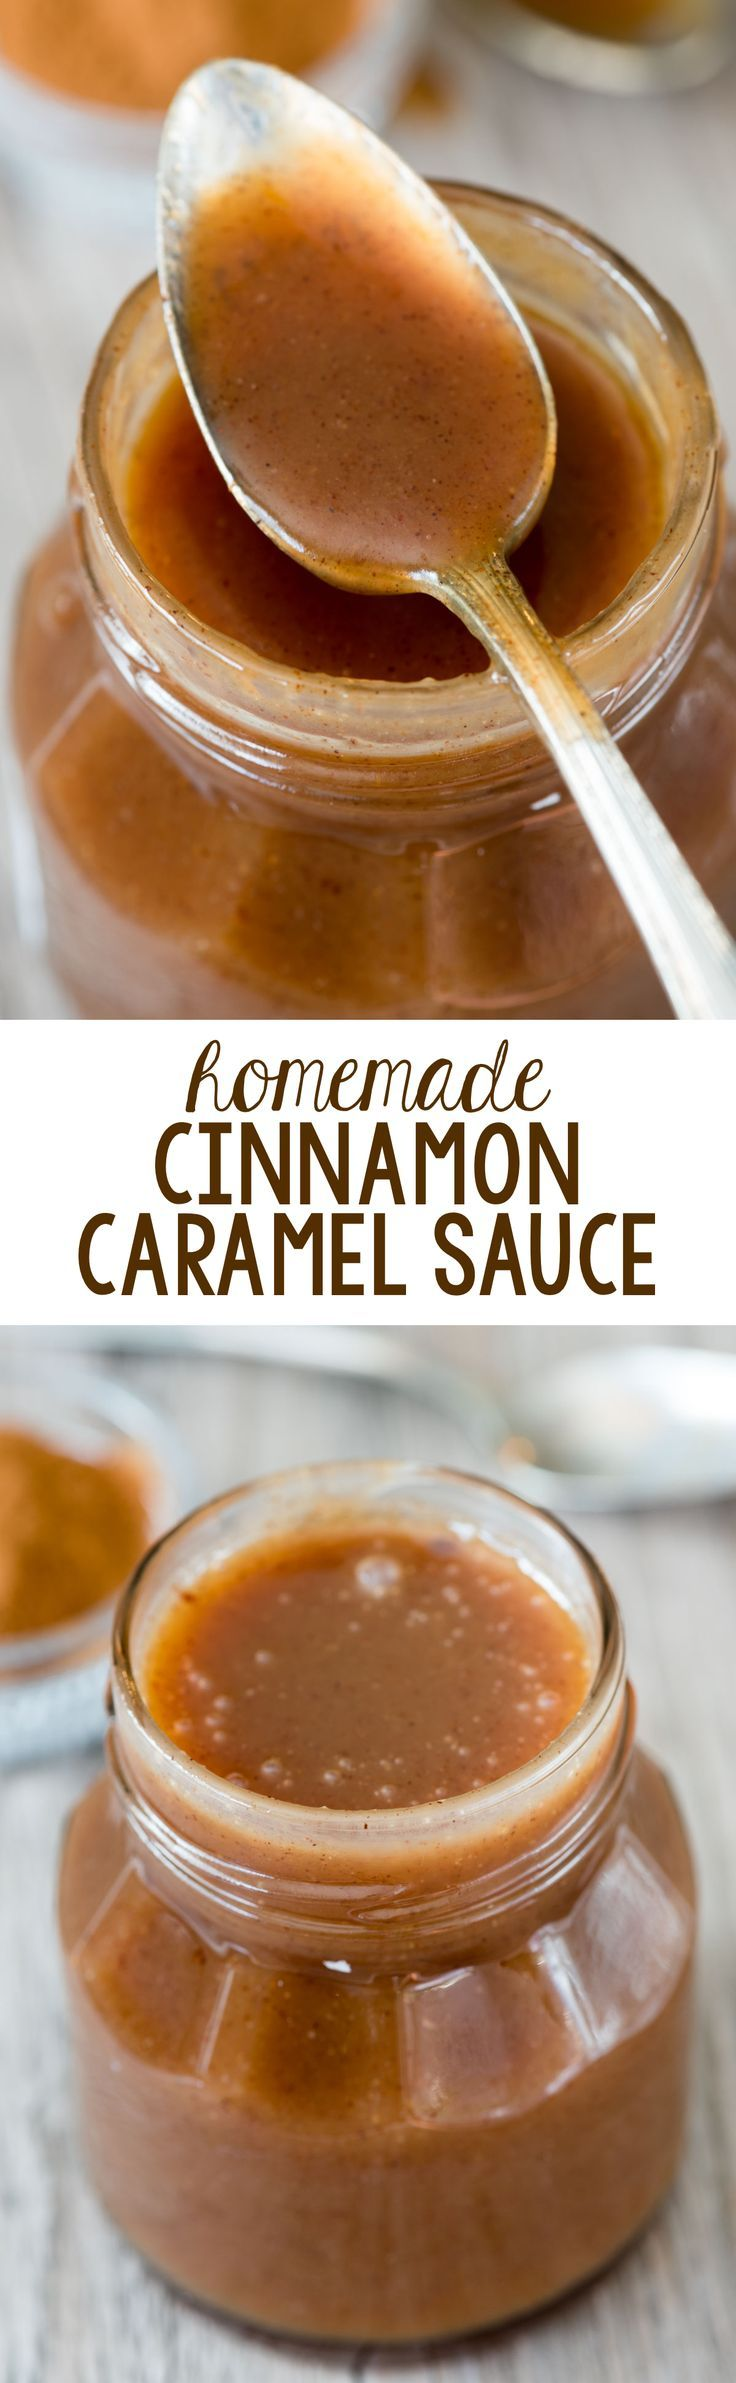 Easy Homemade Cinnamon Caramel Sauce Recipe - this caramel has just 5 ingredients and is so silky smooth and rich with the flavor of cinnamon!